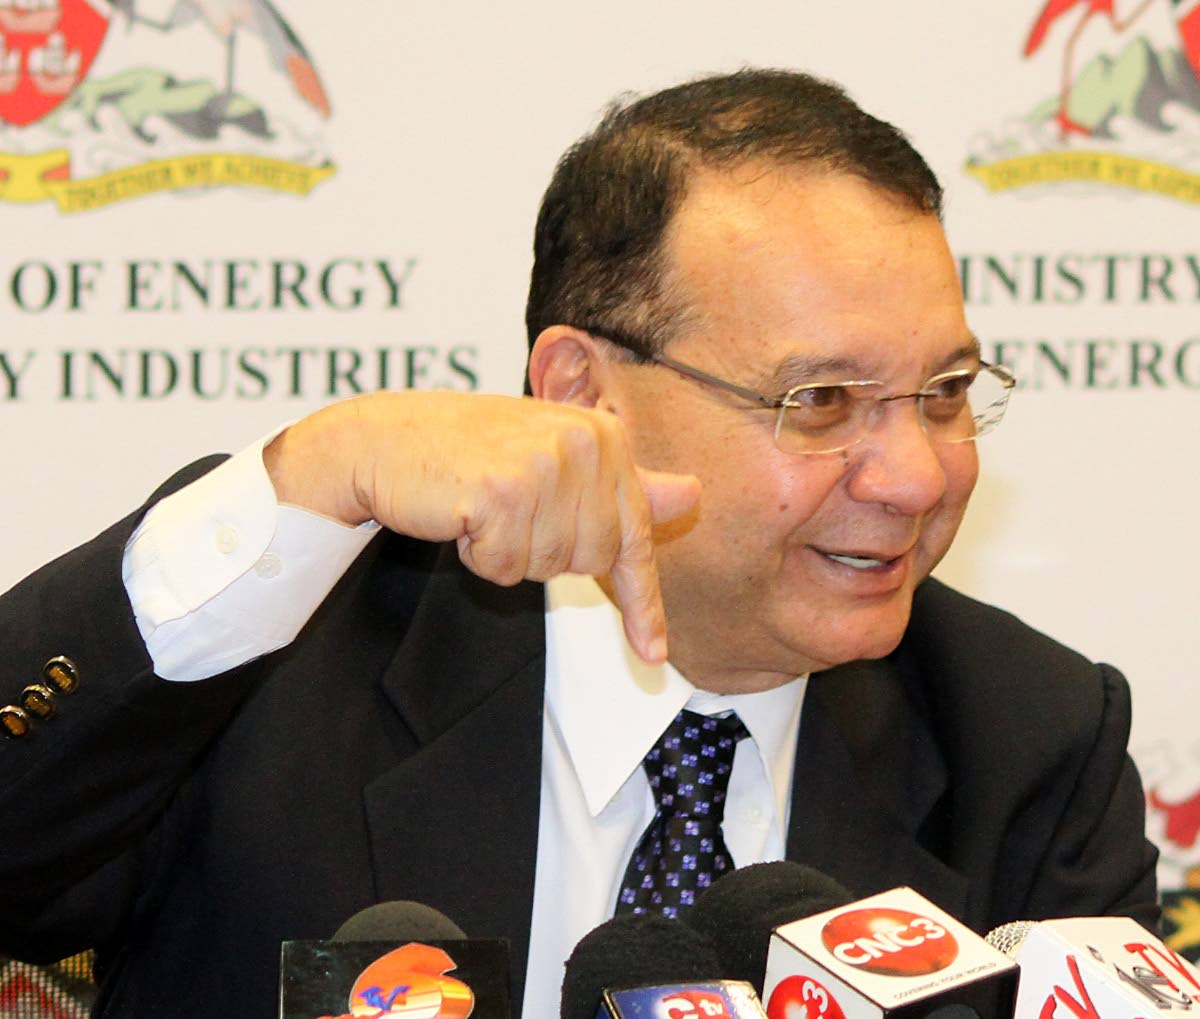 Minister of Energy and Energy Industries, Franklin Khan. File photo